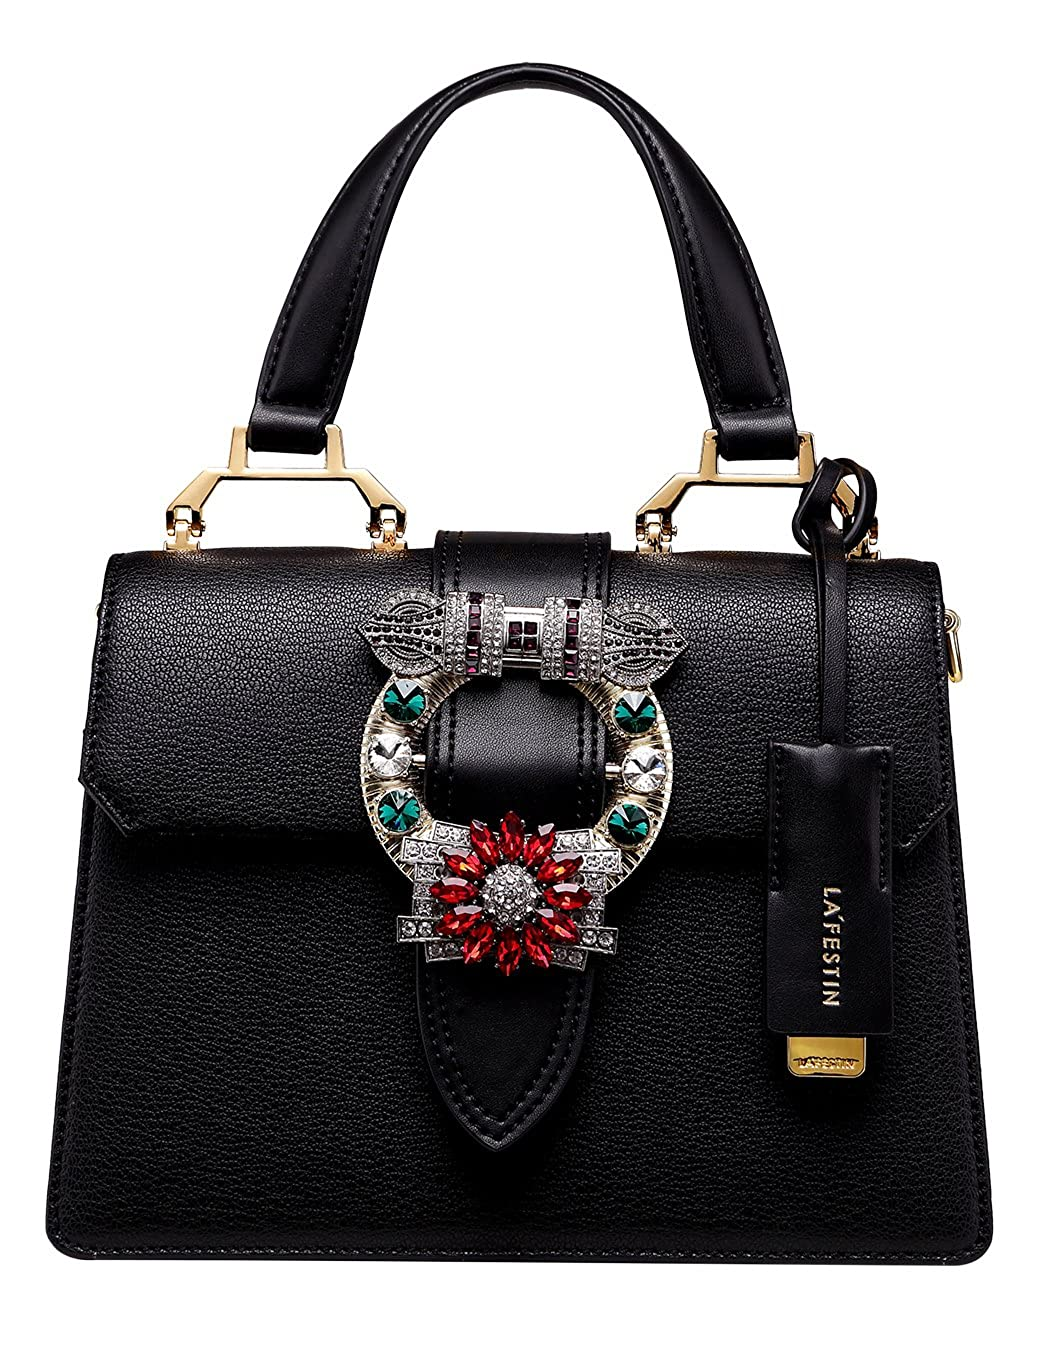 4afa56c4be4b LA FESTIN Ladies Fashion Handbags Dazzling Jewels Black Leather Shoulder  Purses  Handbags  Amazon.com